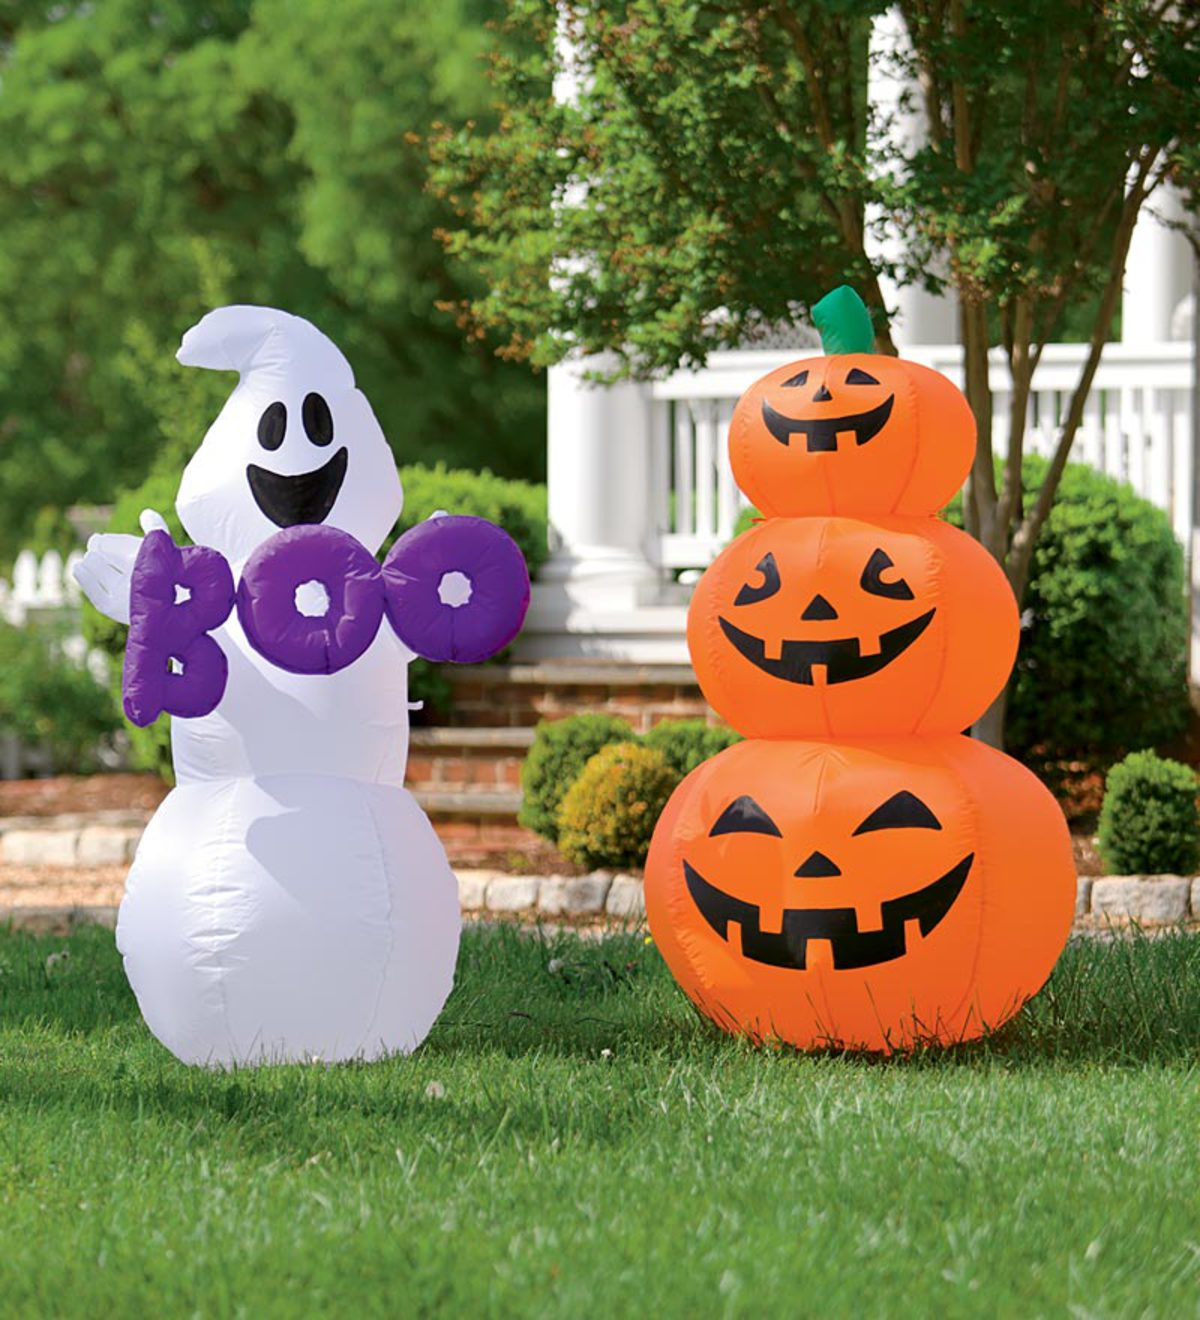 Pumpkin or Ghost Weather-Resistant Halloween Inflatable